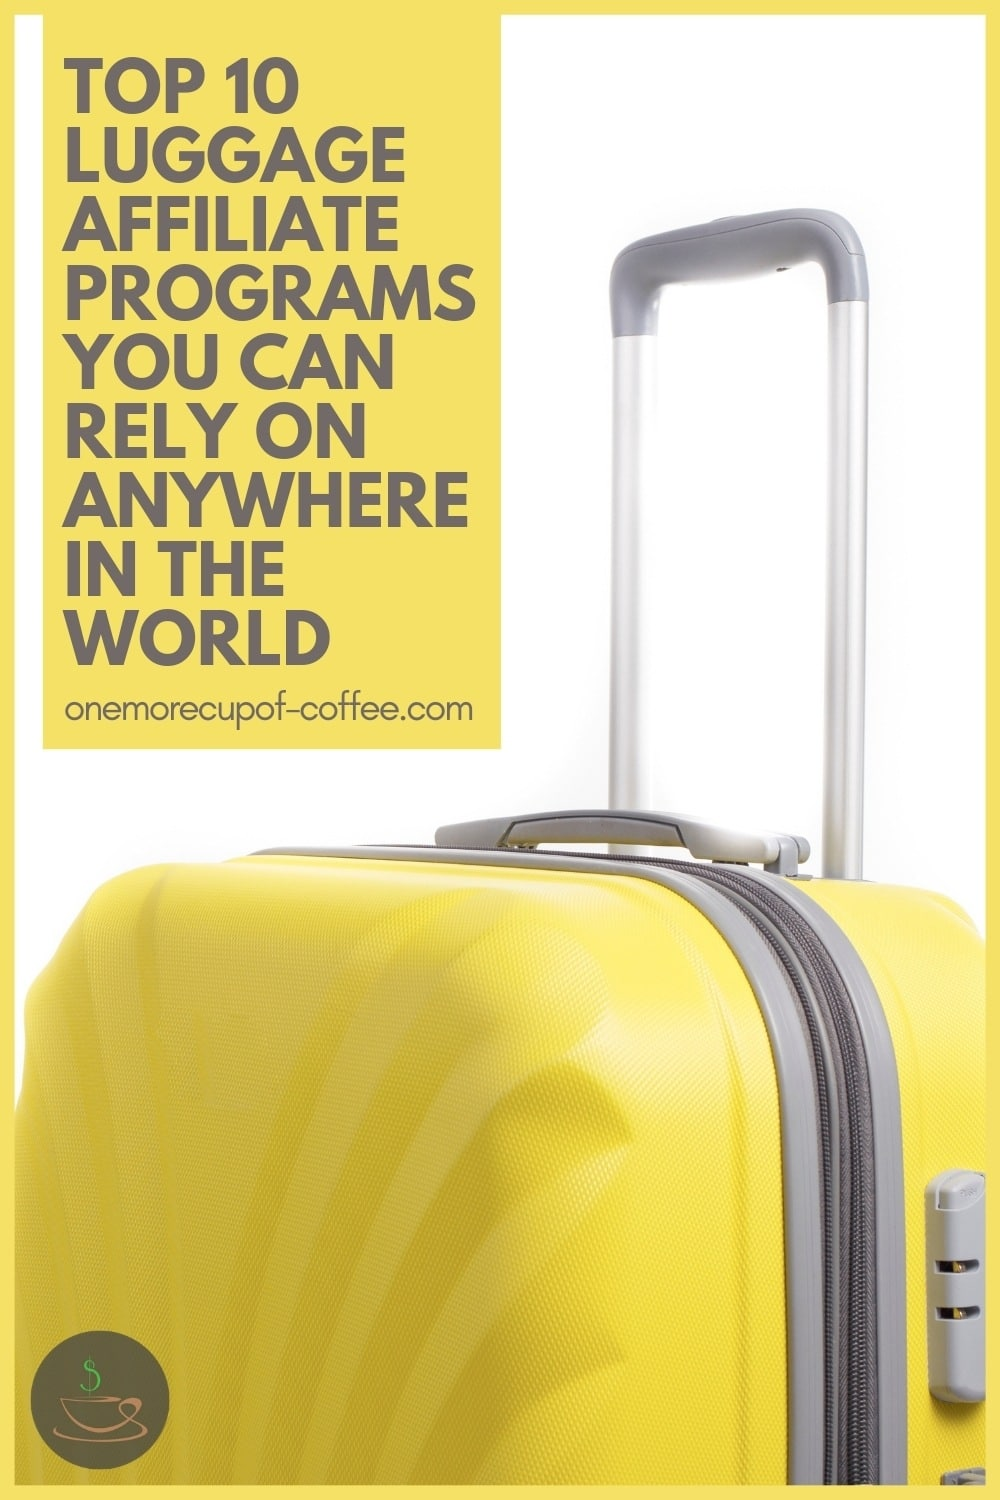 """closeup image of a yellow hard shell luggage against a white background; with text overlay """"Top 10 Luggage Affiliate Programs You Can Rely On Anywhere In The World"""""""